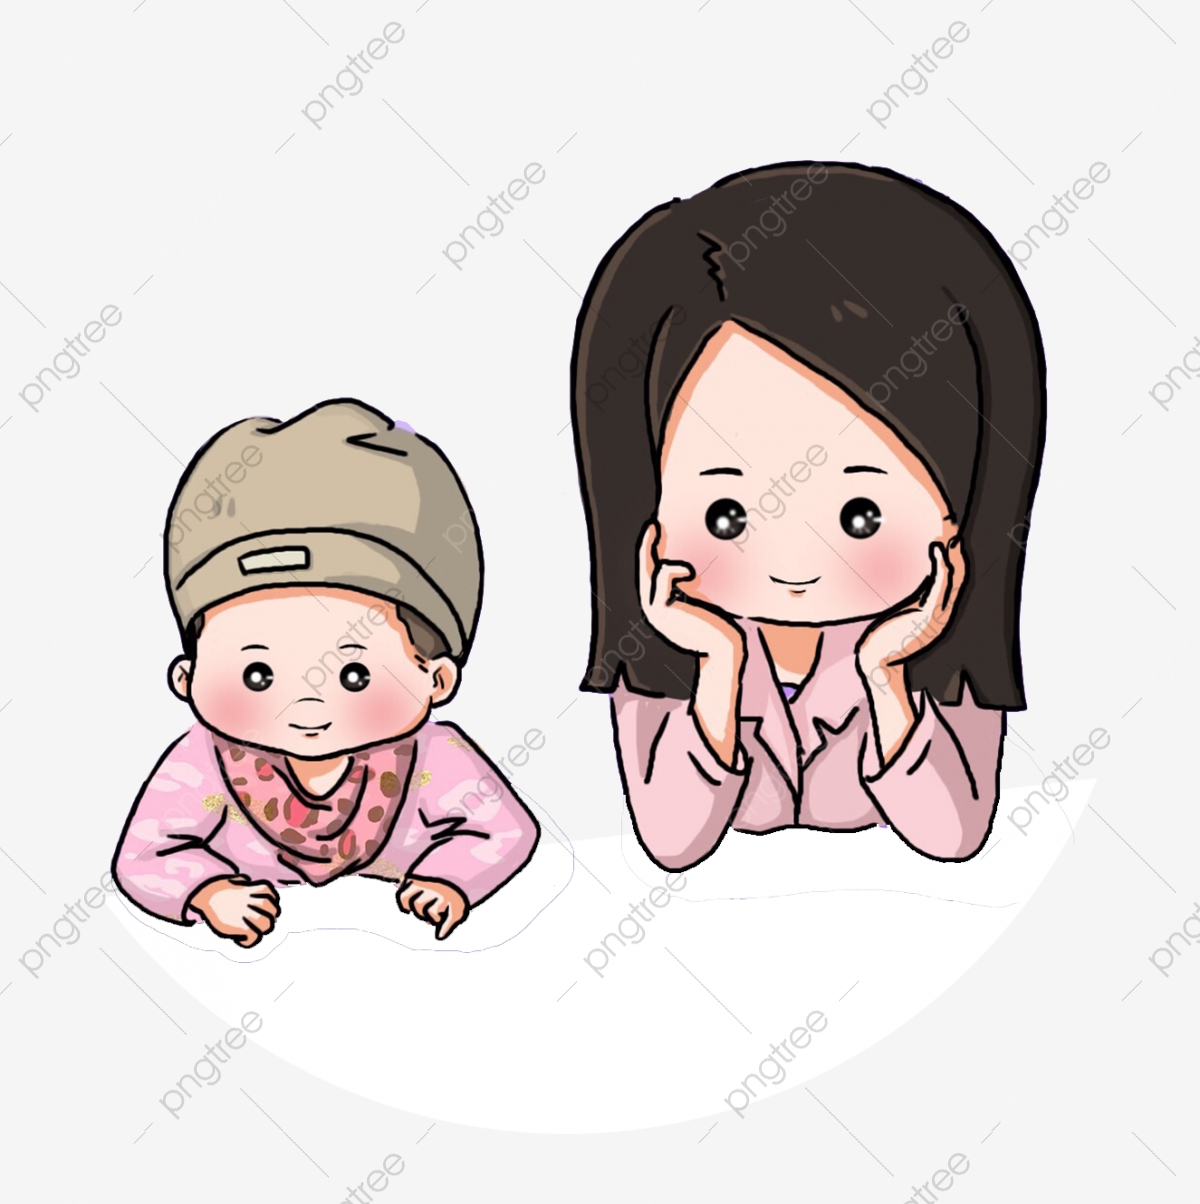 1 mom finger clipart clipart images gallery for free.